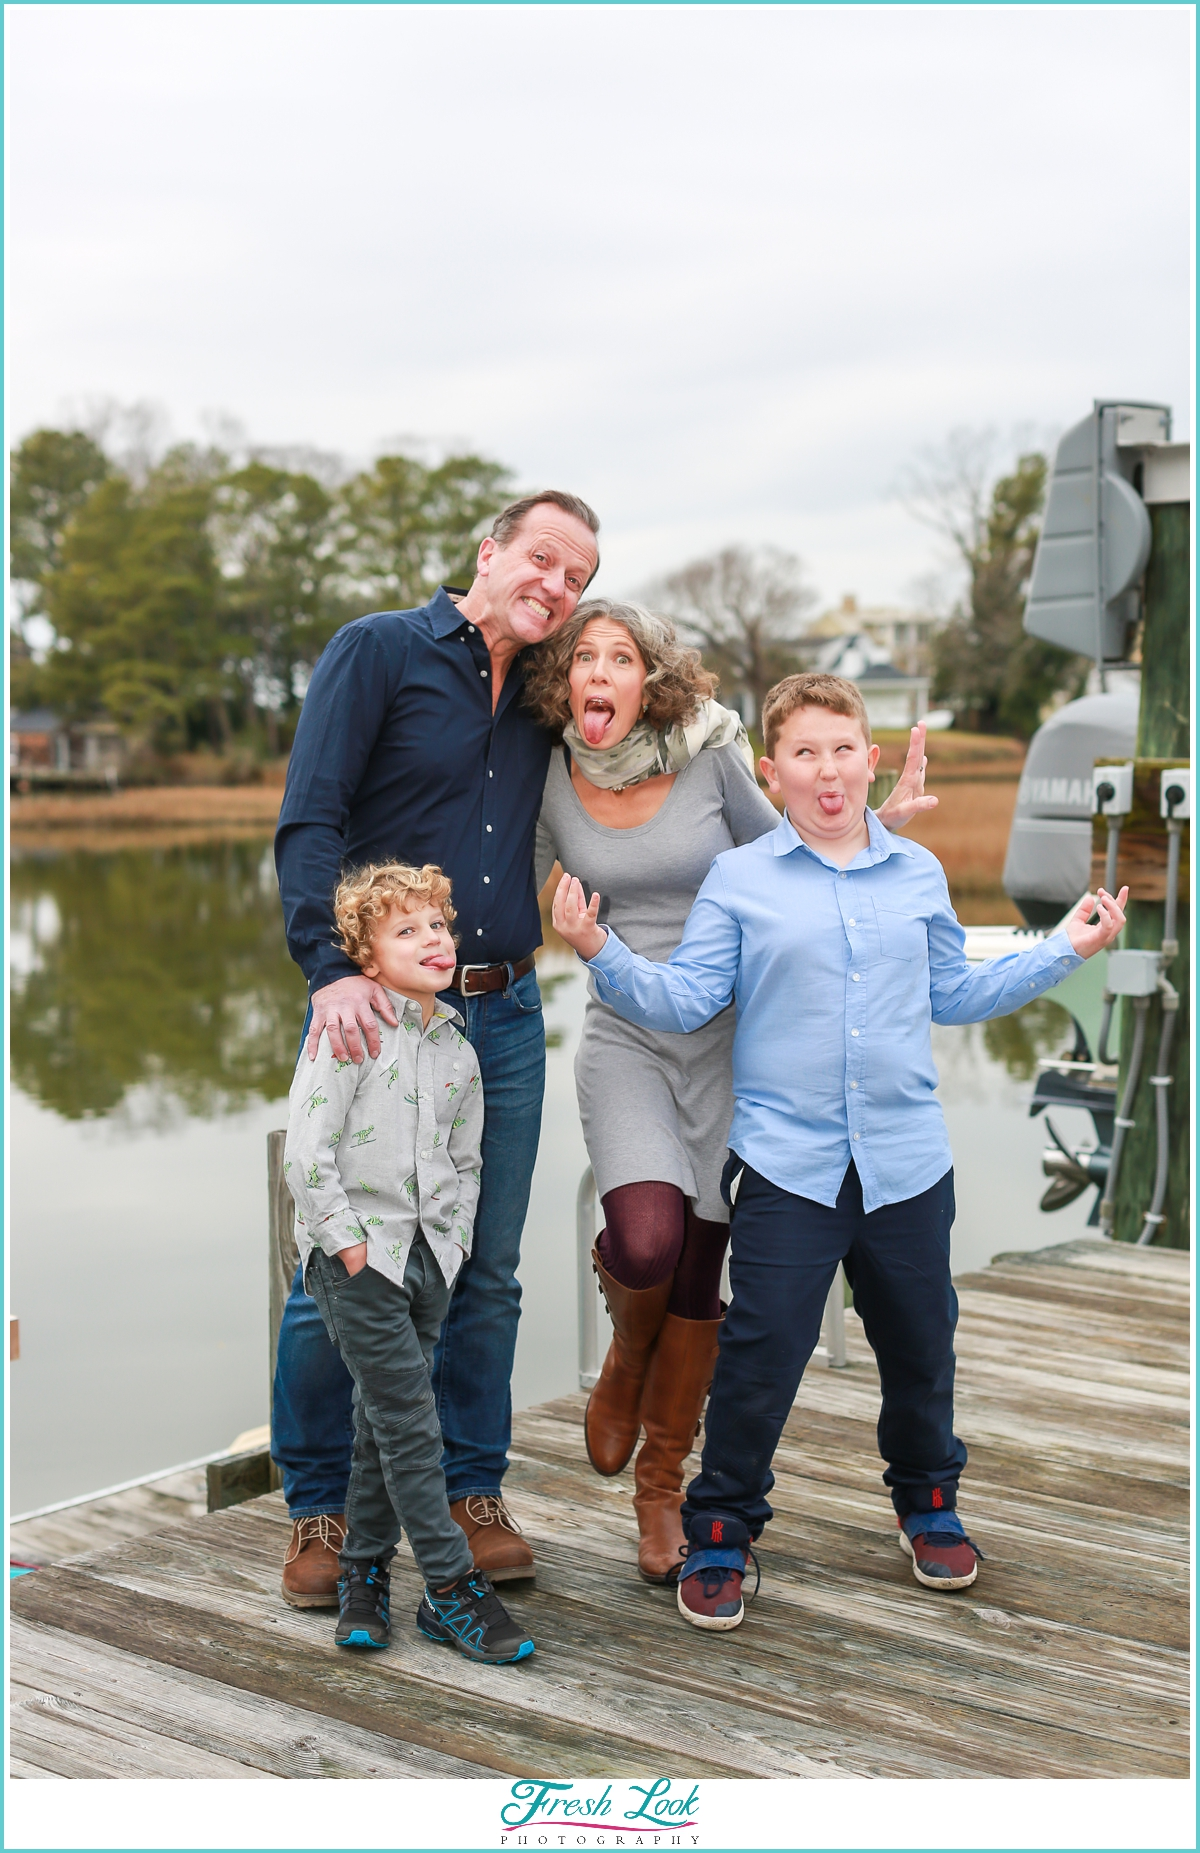 silly family photoshoot